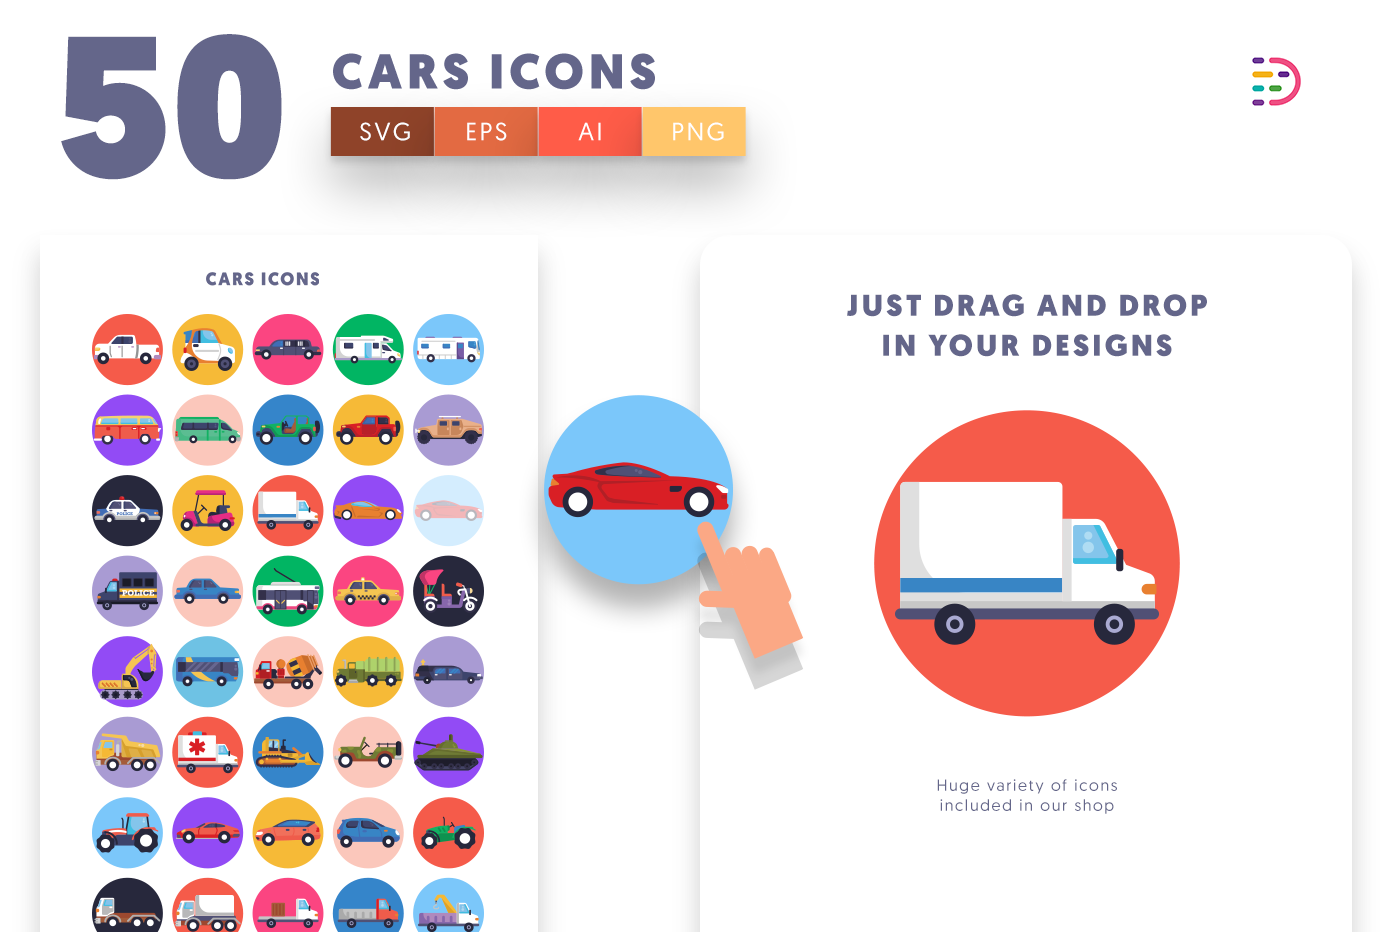 Drag and drop vector 50 Cars Icons